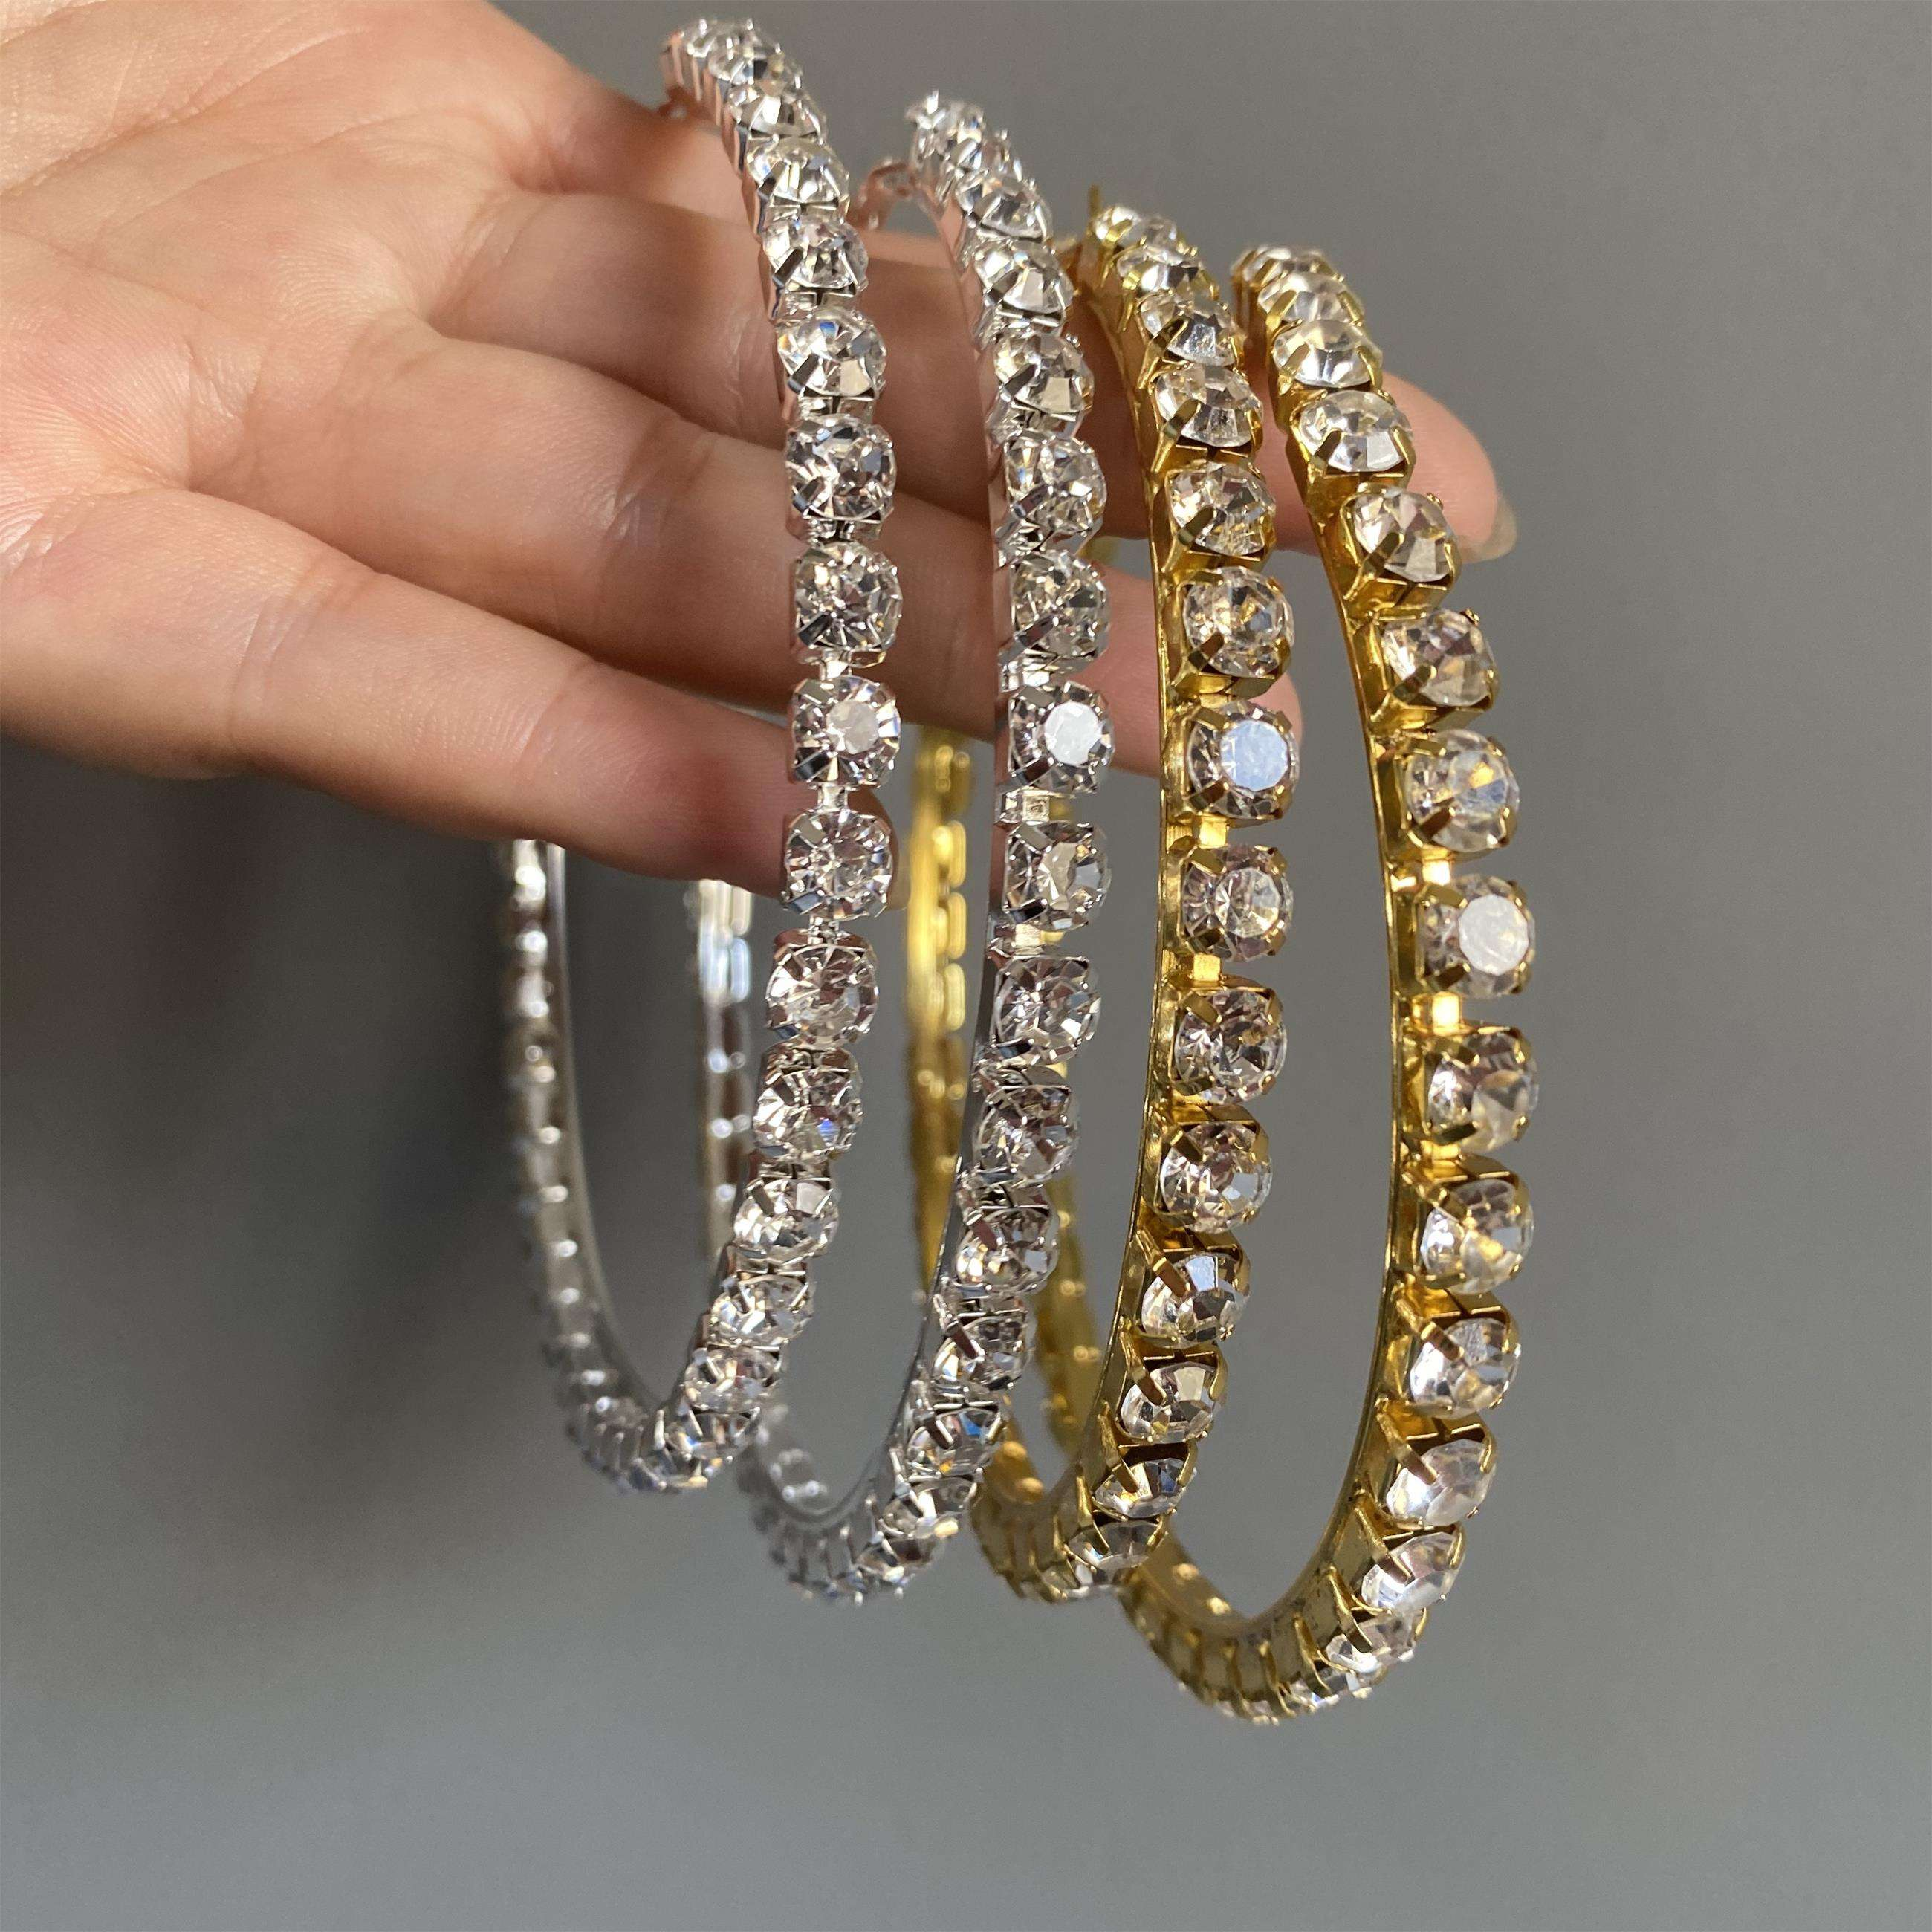 Big Large Stone Rihanna Style Hoop Earrings Hip Hop Real Big Fashion Crystal Diamond Hoop Earrings